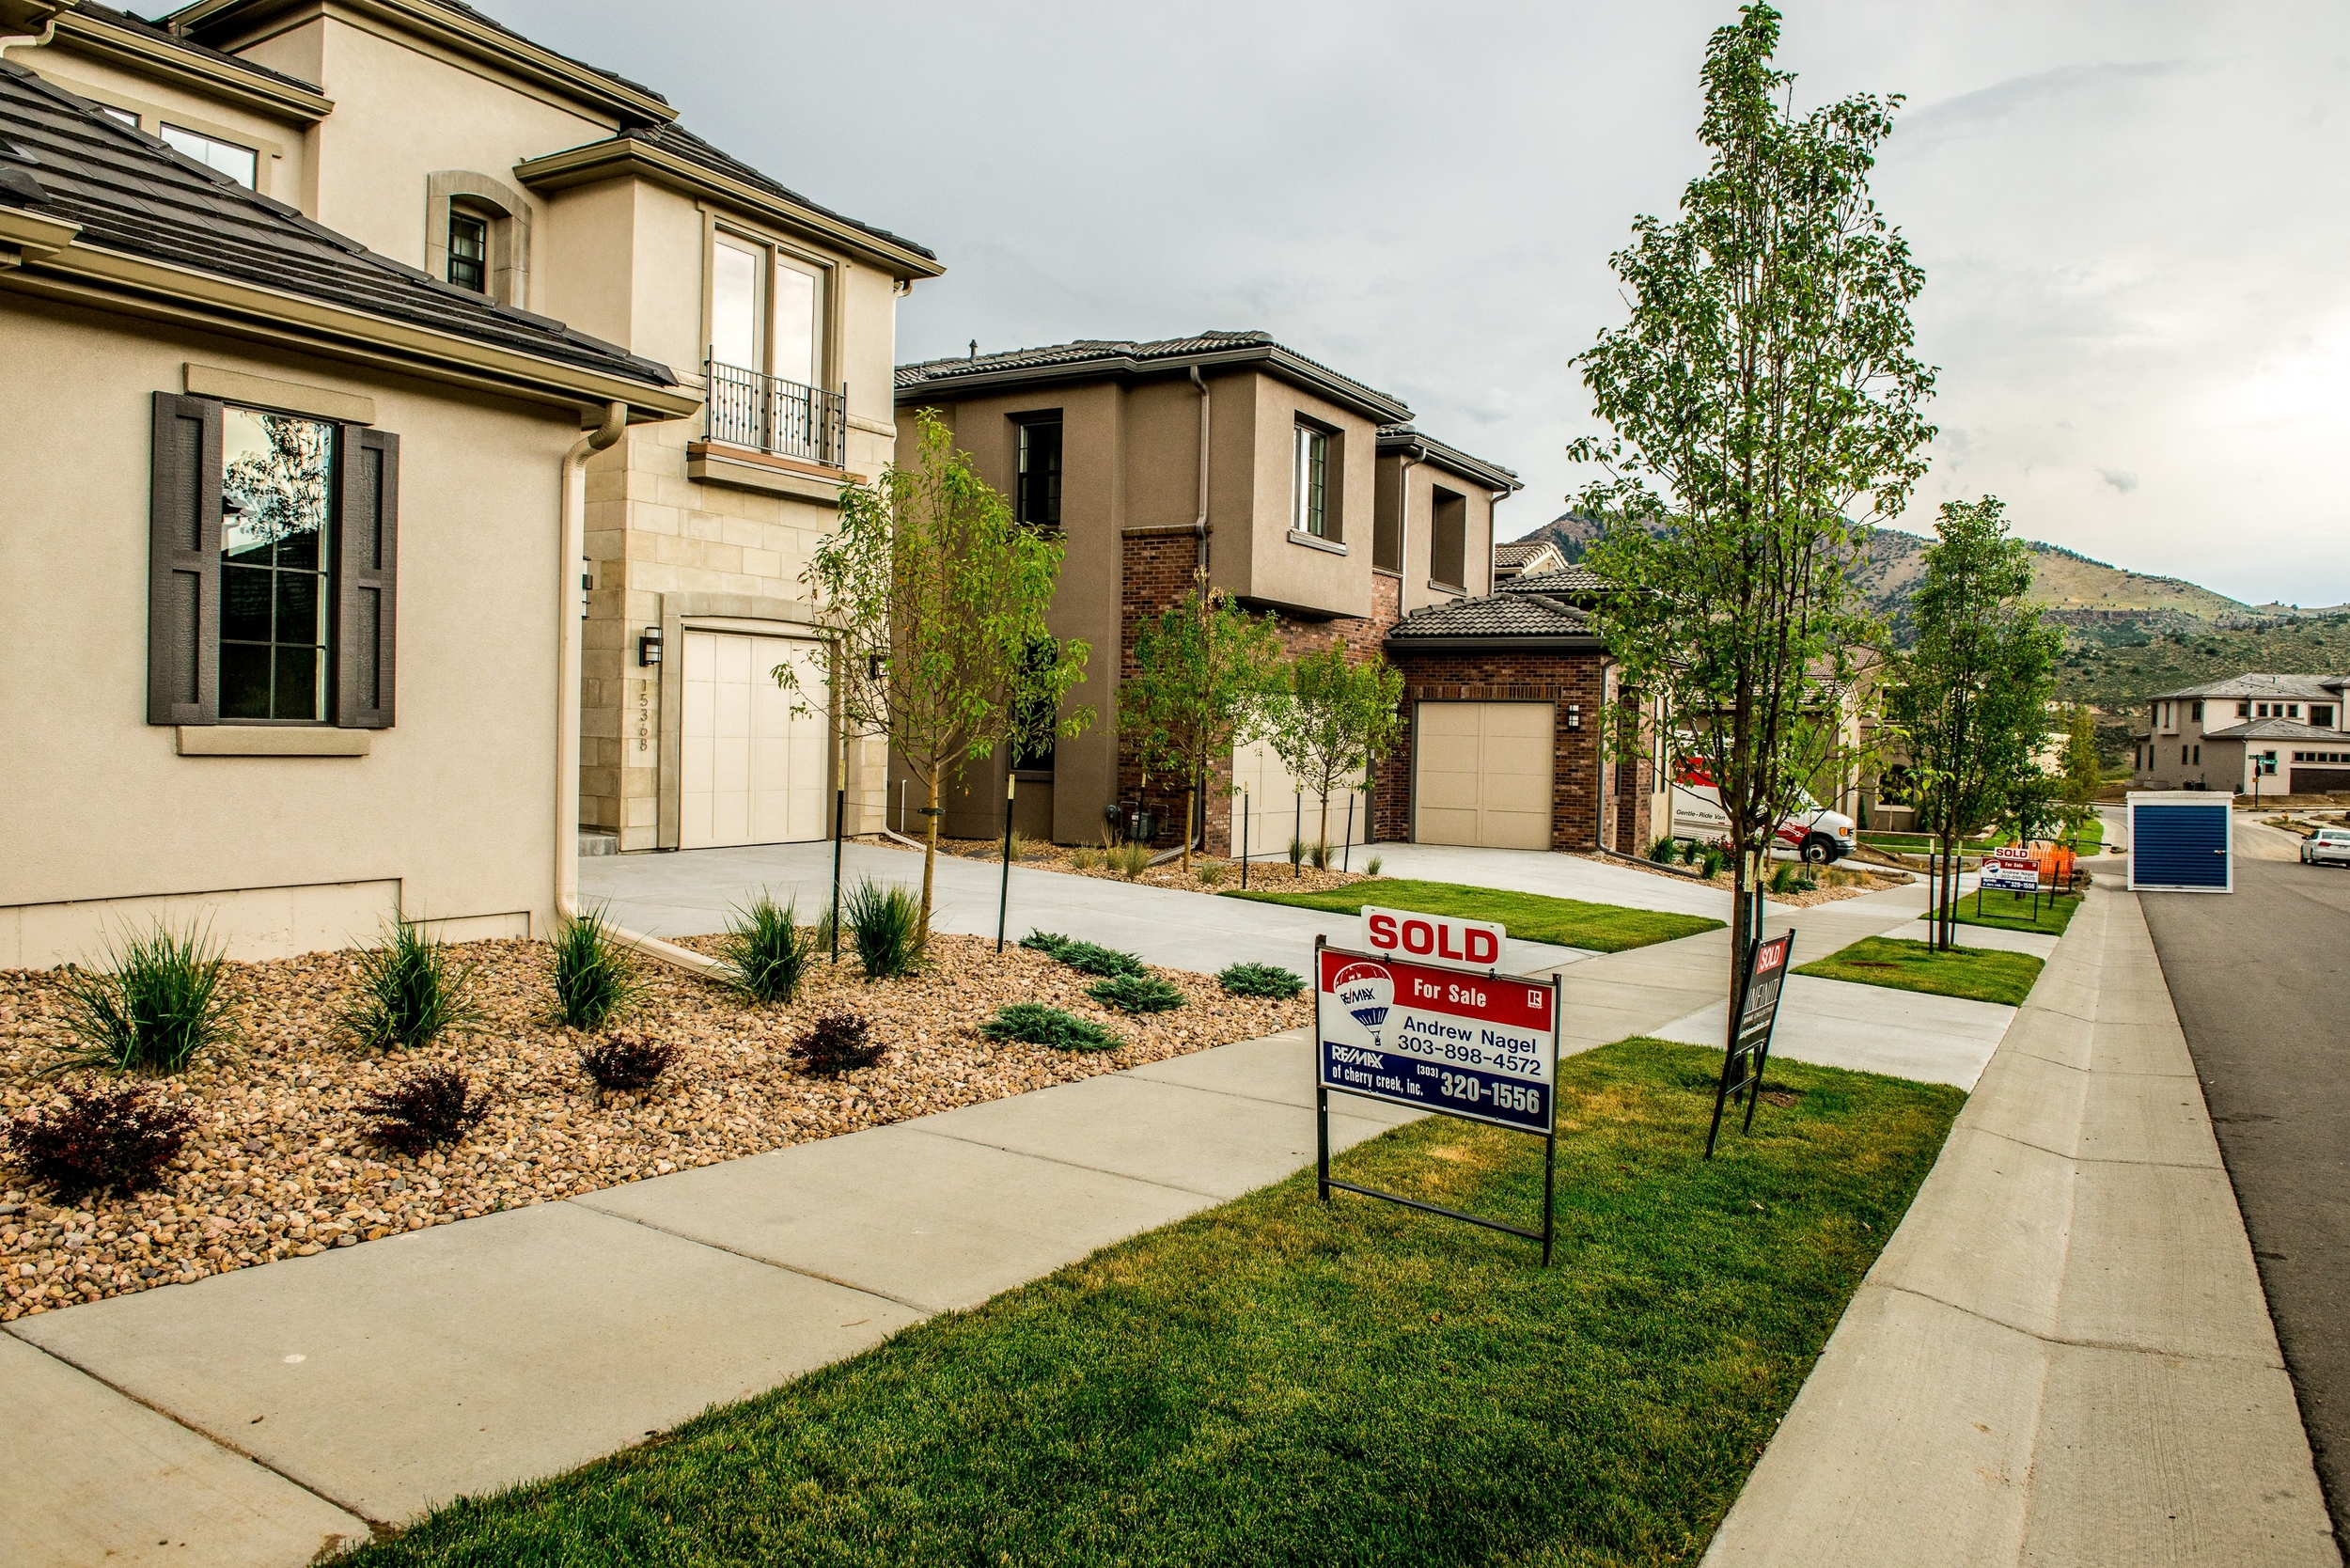 Andrew's listing sells in Solterra